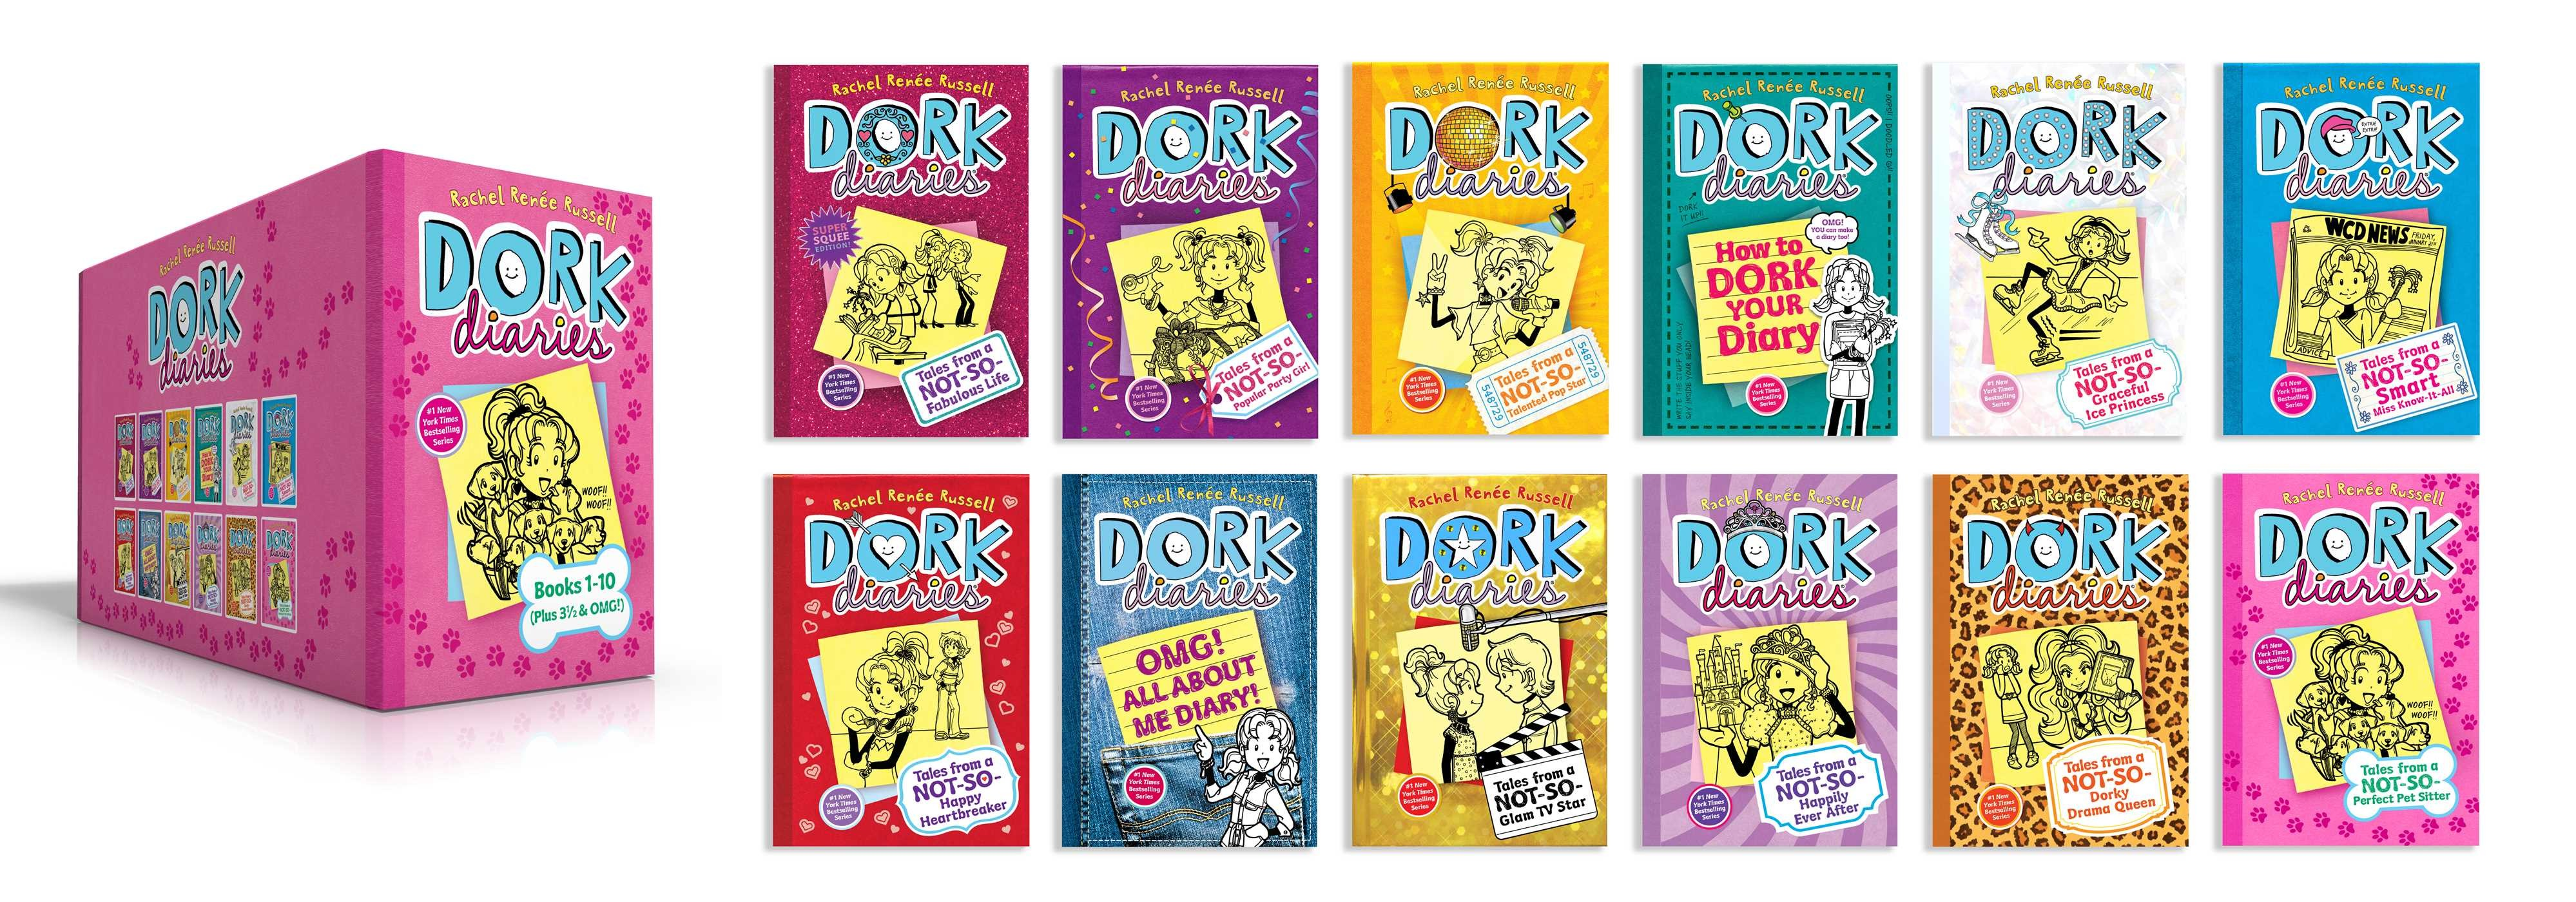 Dork diaries books 1 10 plus 3 1 2 omg 9781534424593.in01